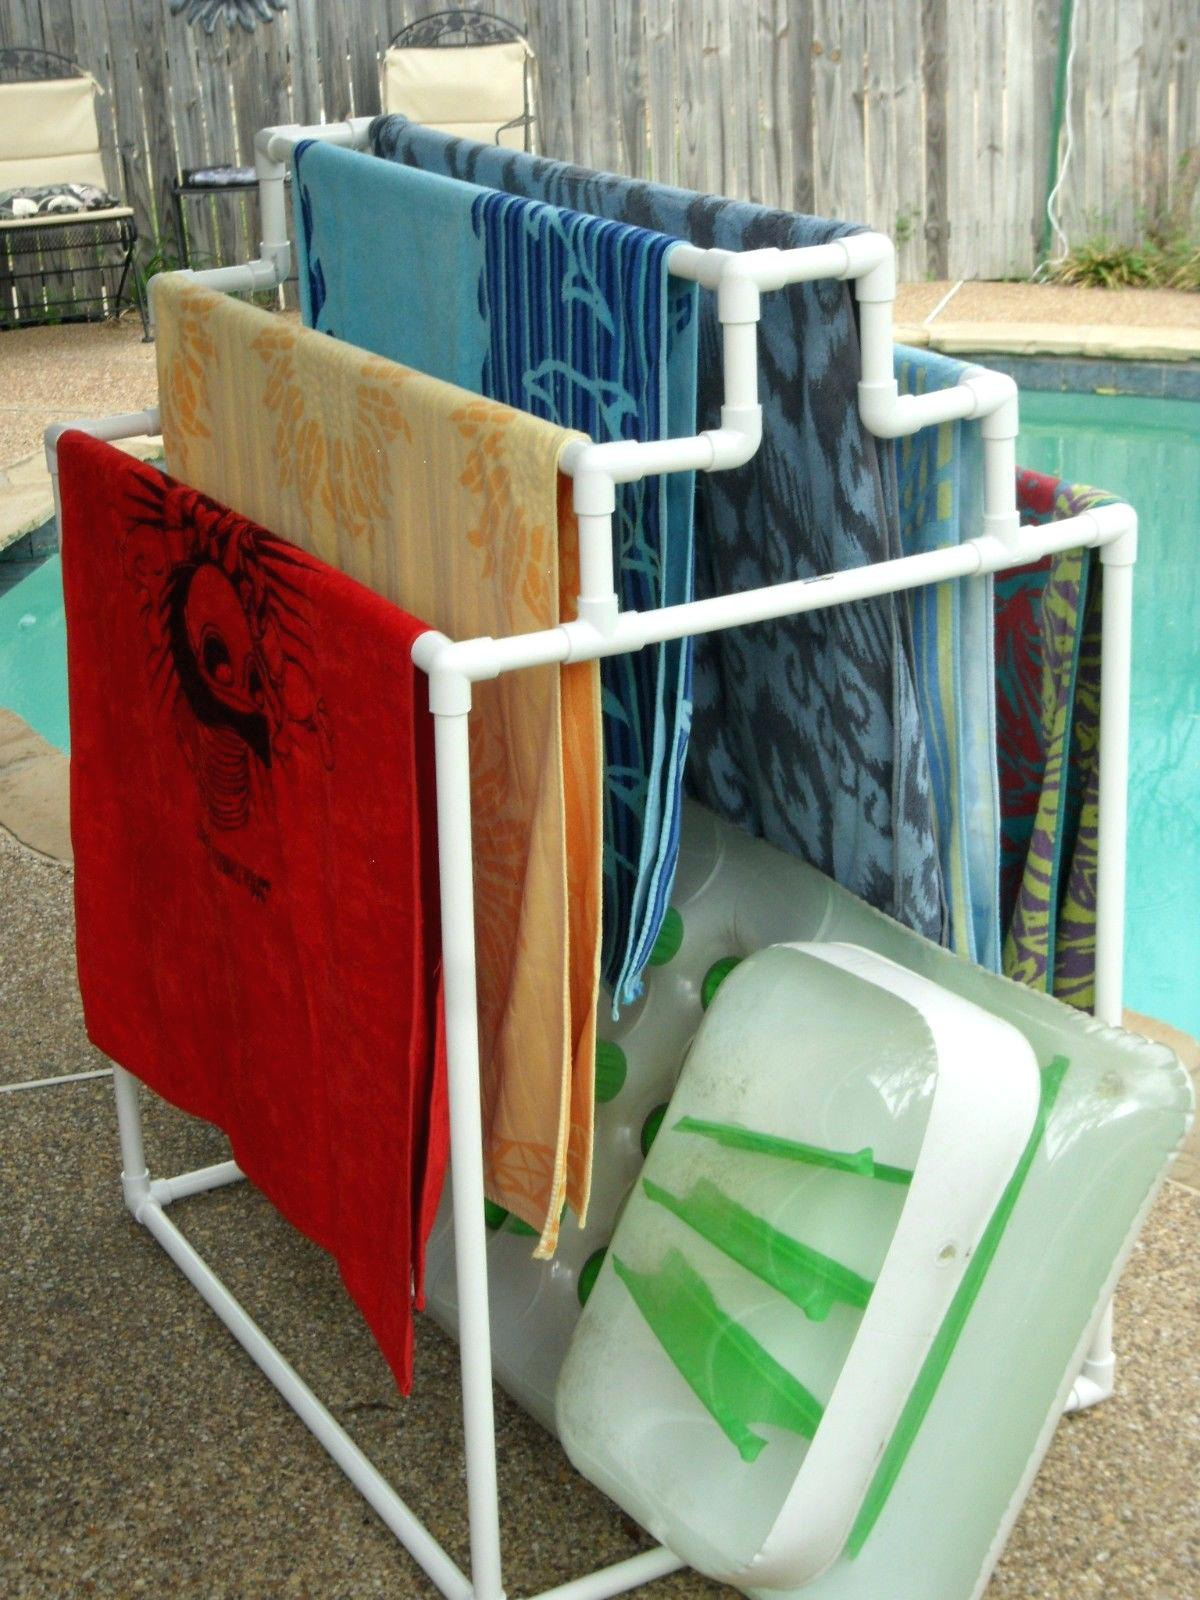 storage for pool floats storage for pool floats diy pvc pool float storage rack organizer lawratchet